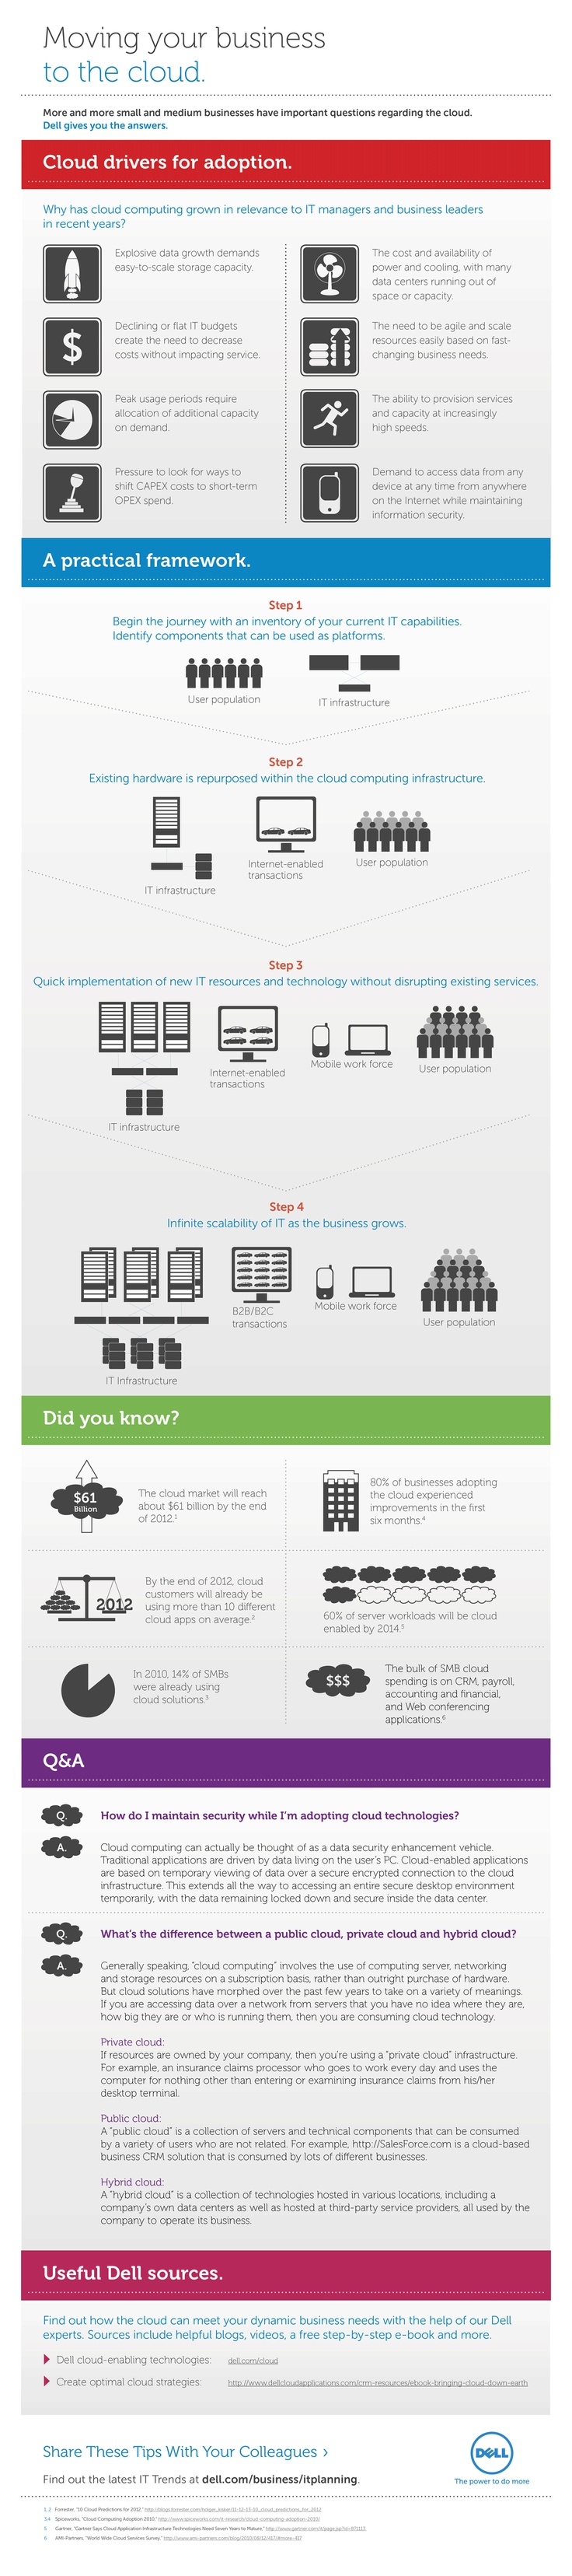 Hybrid infrastructure you did it you switched over now lock it down - Cool Dell Infographic